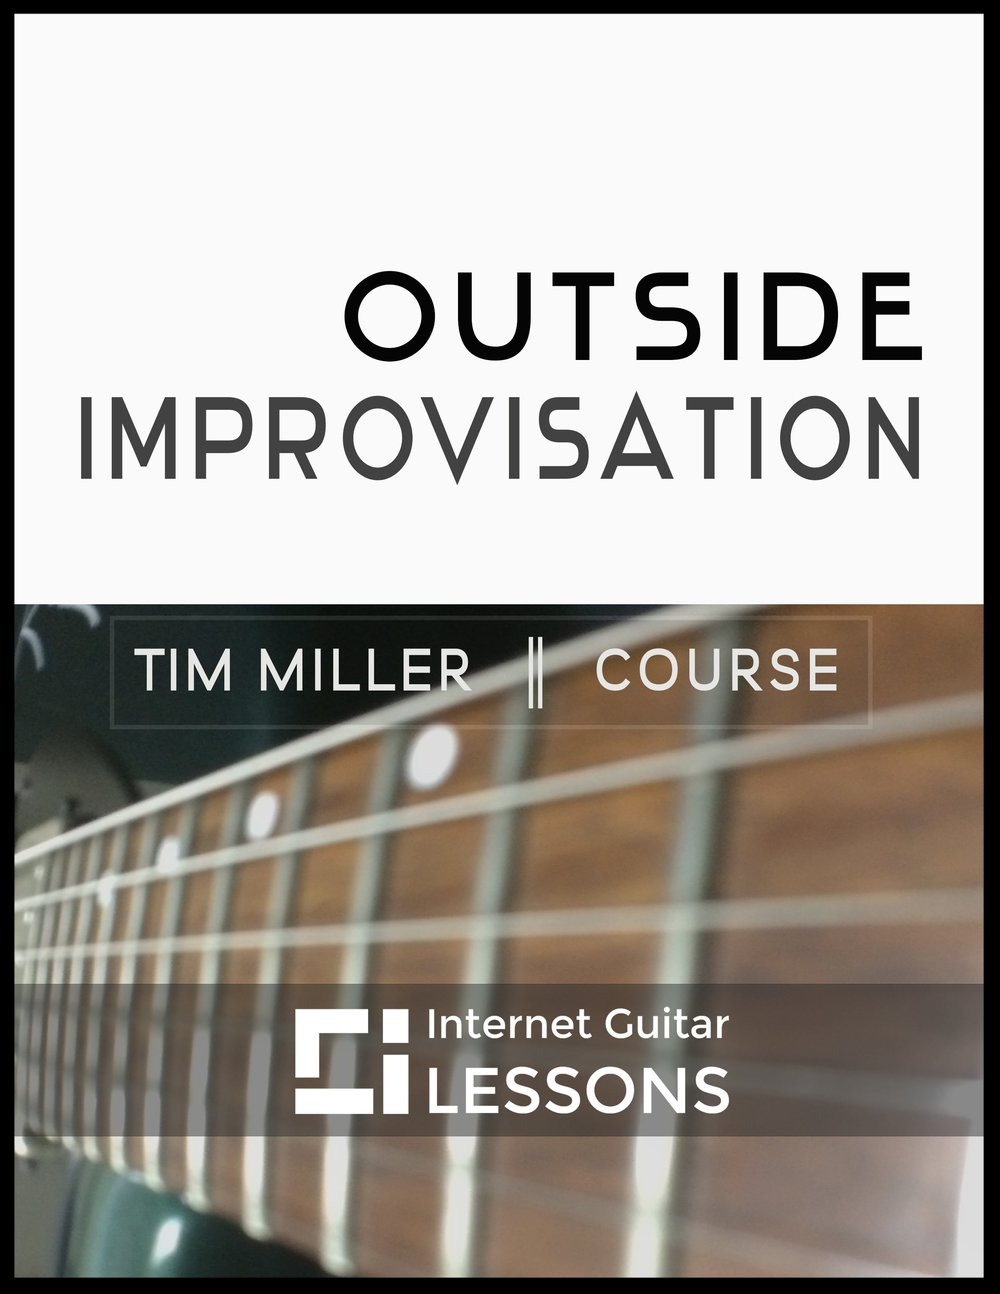 Outside Improvisation 1.17 flat.jpg